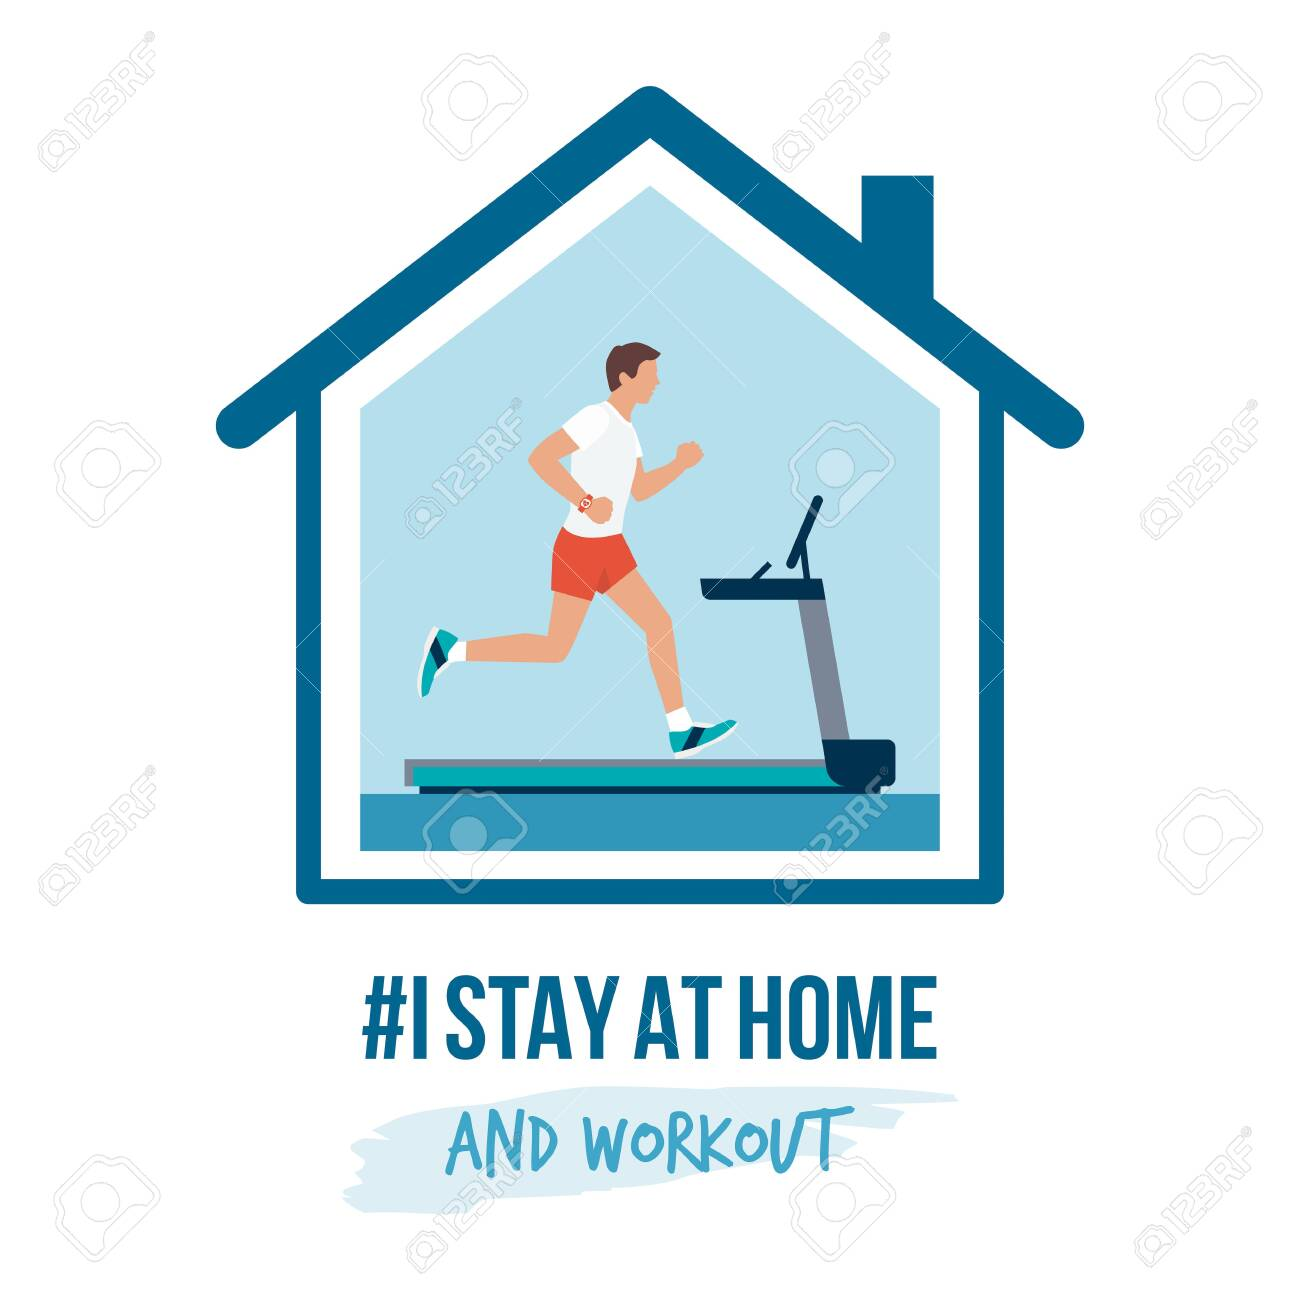 I stay at home awareness social media campaign and coronavirus prevention: man running on the treadmill at home - 142358109